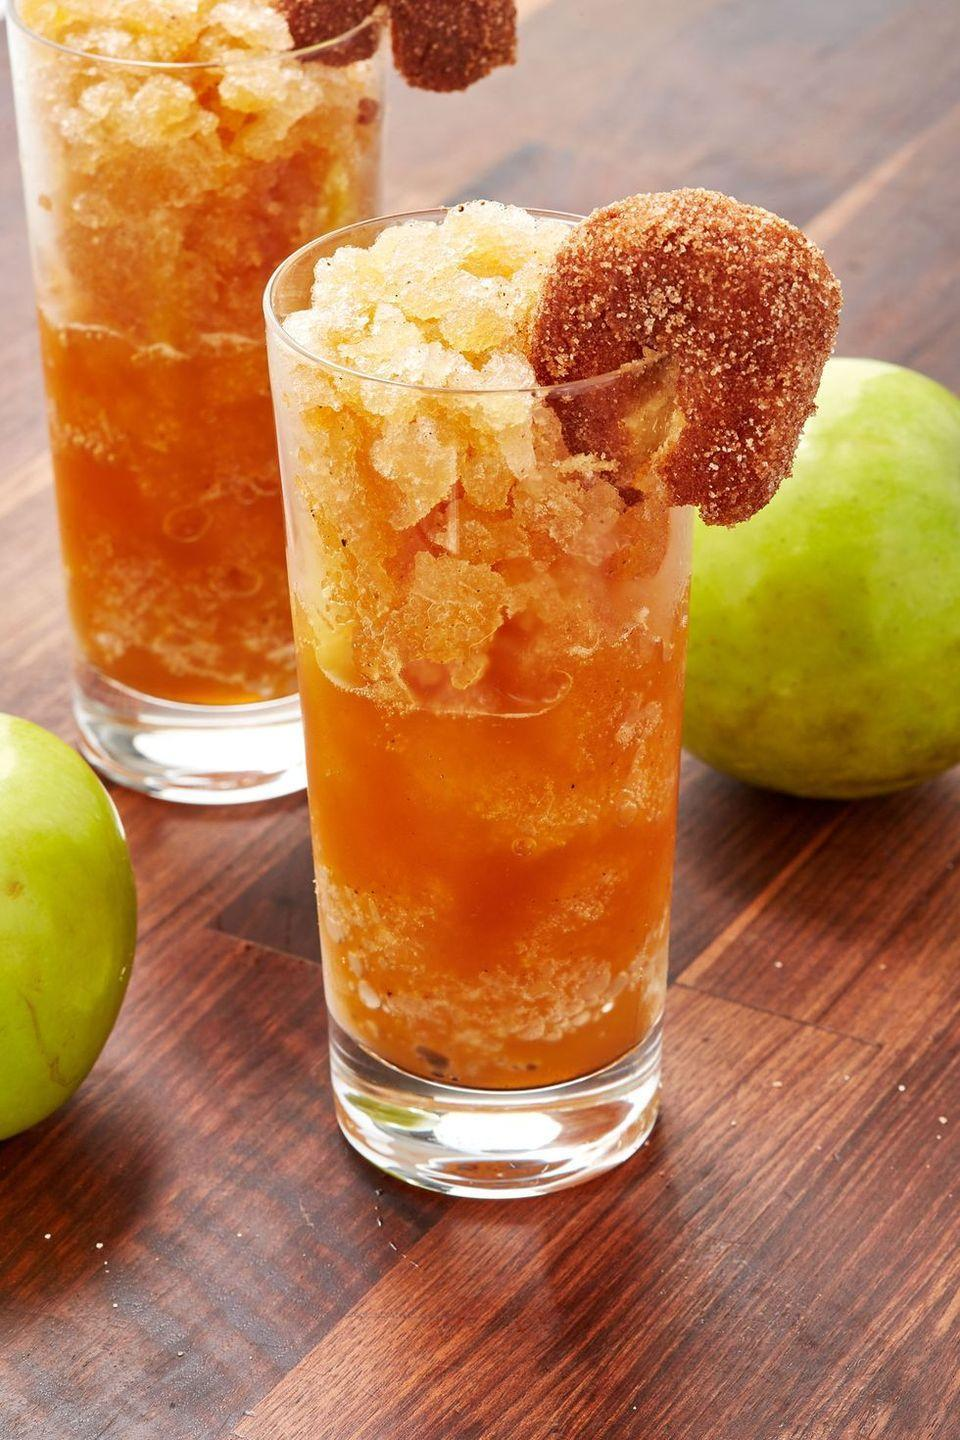 """<p>Squeeze in one last frozen bev before it gets <em>really </em>chilly out. </p><p>Get the recipe from <a href=""""https://www.delish.com/cooking/recipes/a49600/apple-cider-slushies-recipe/"""" rel=""""nofollow noopener"""" target=""""_blank"""" data-ylk=""""slk:Delish"""" class=""""link rapid-noclick-resp"""">Delish</a>.</p>"""